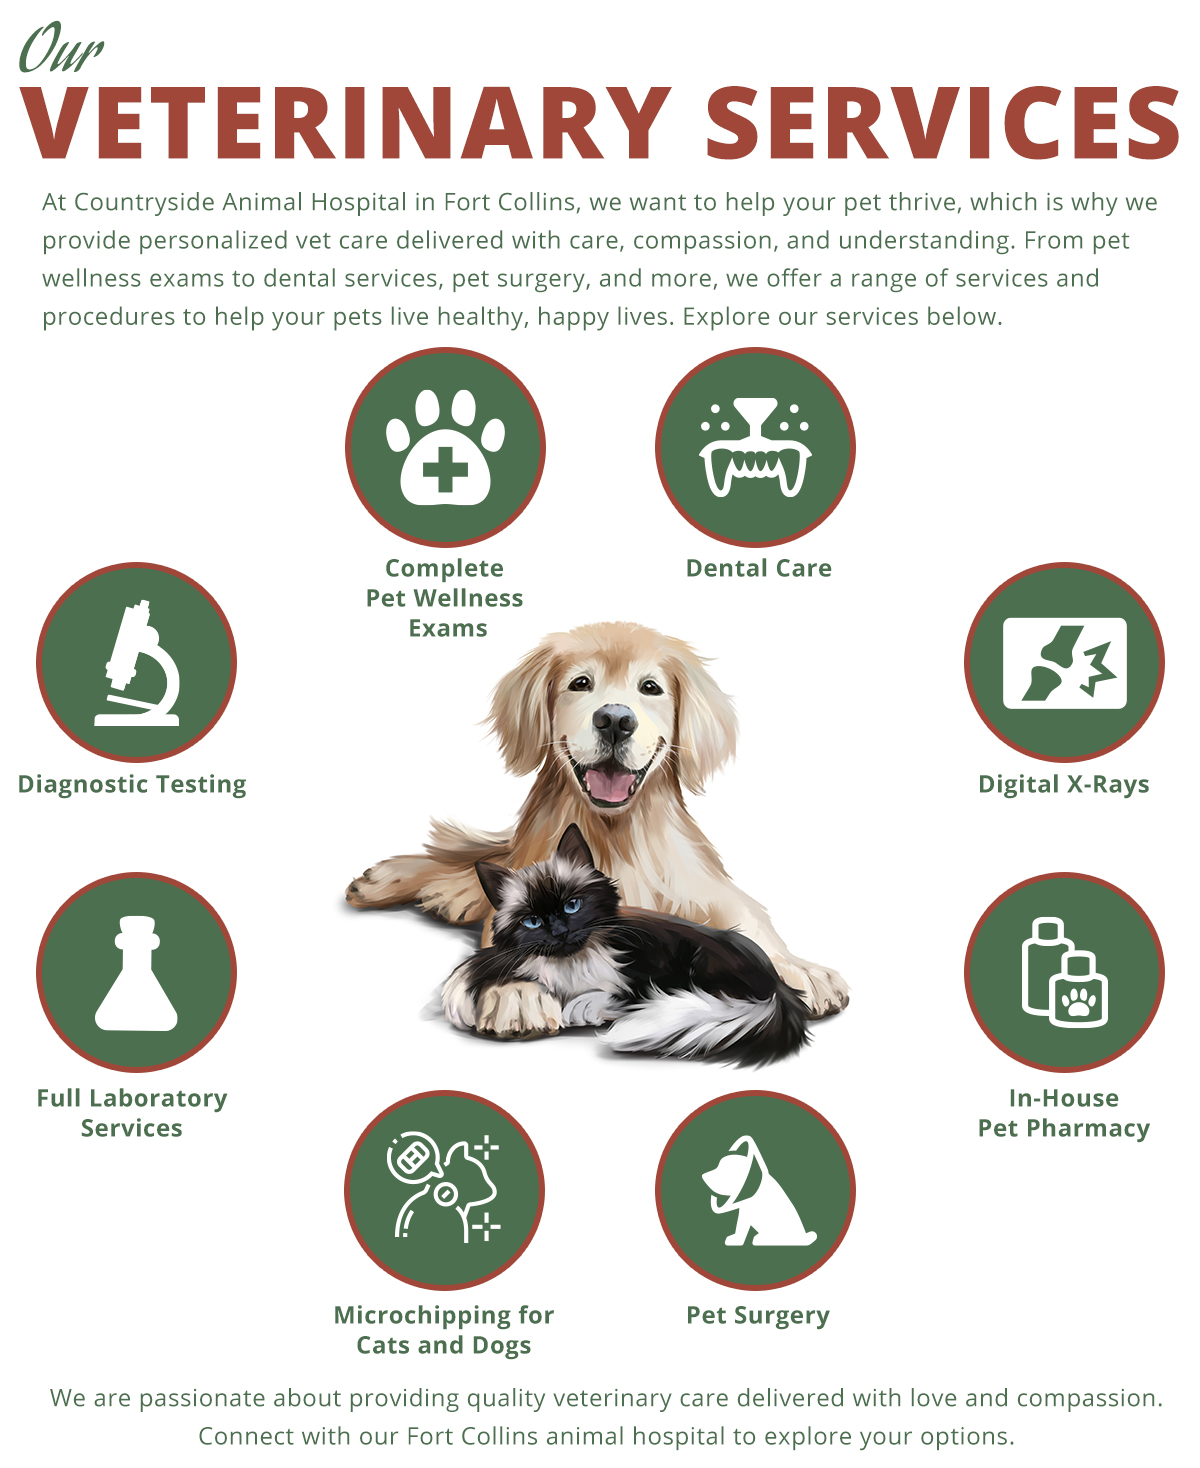 Infographic highlighting the different veterinary services we offer at our Fort Collins animal hospital for dogs and cats